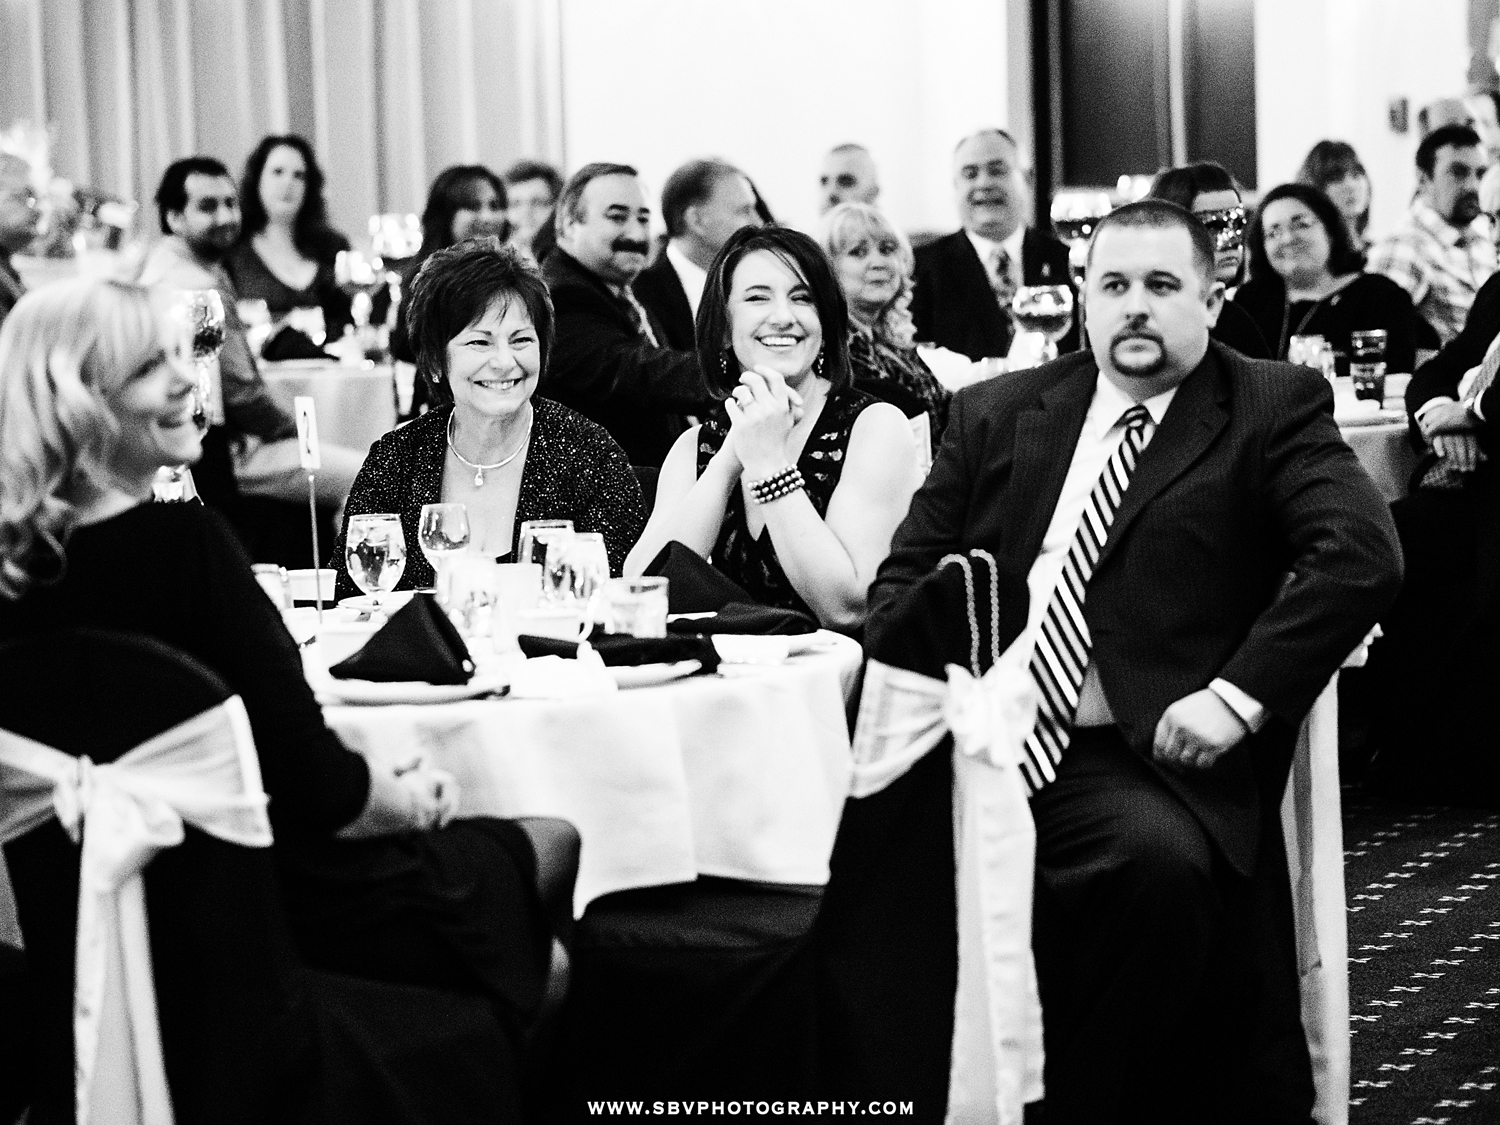 Guests smile and applaud the inspiring speeches after dinner at the NICK foundation benefit.